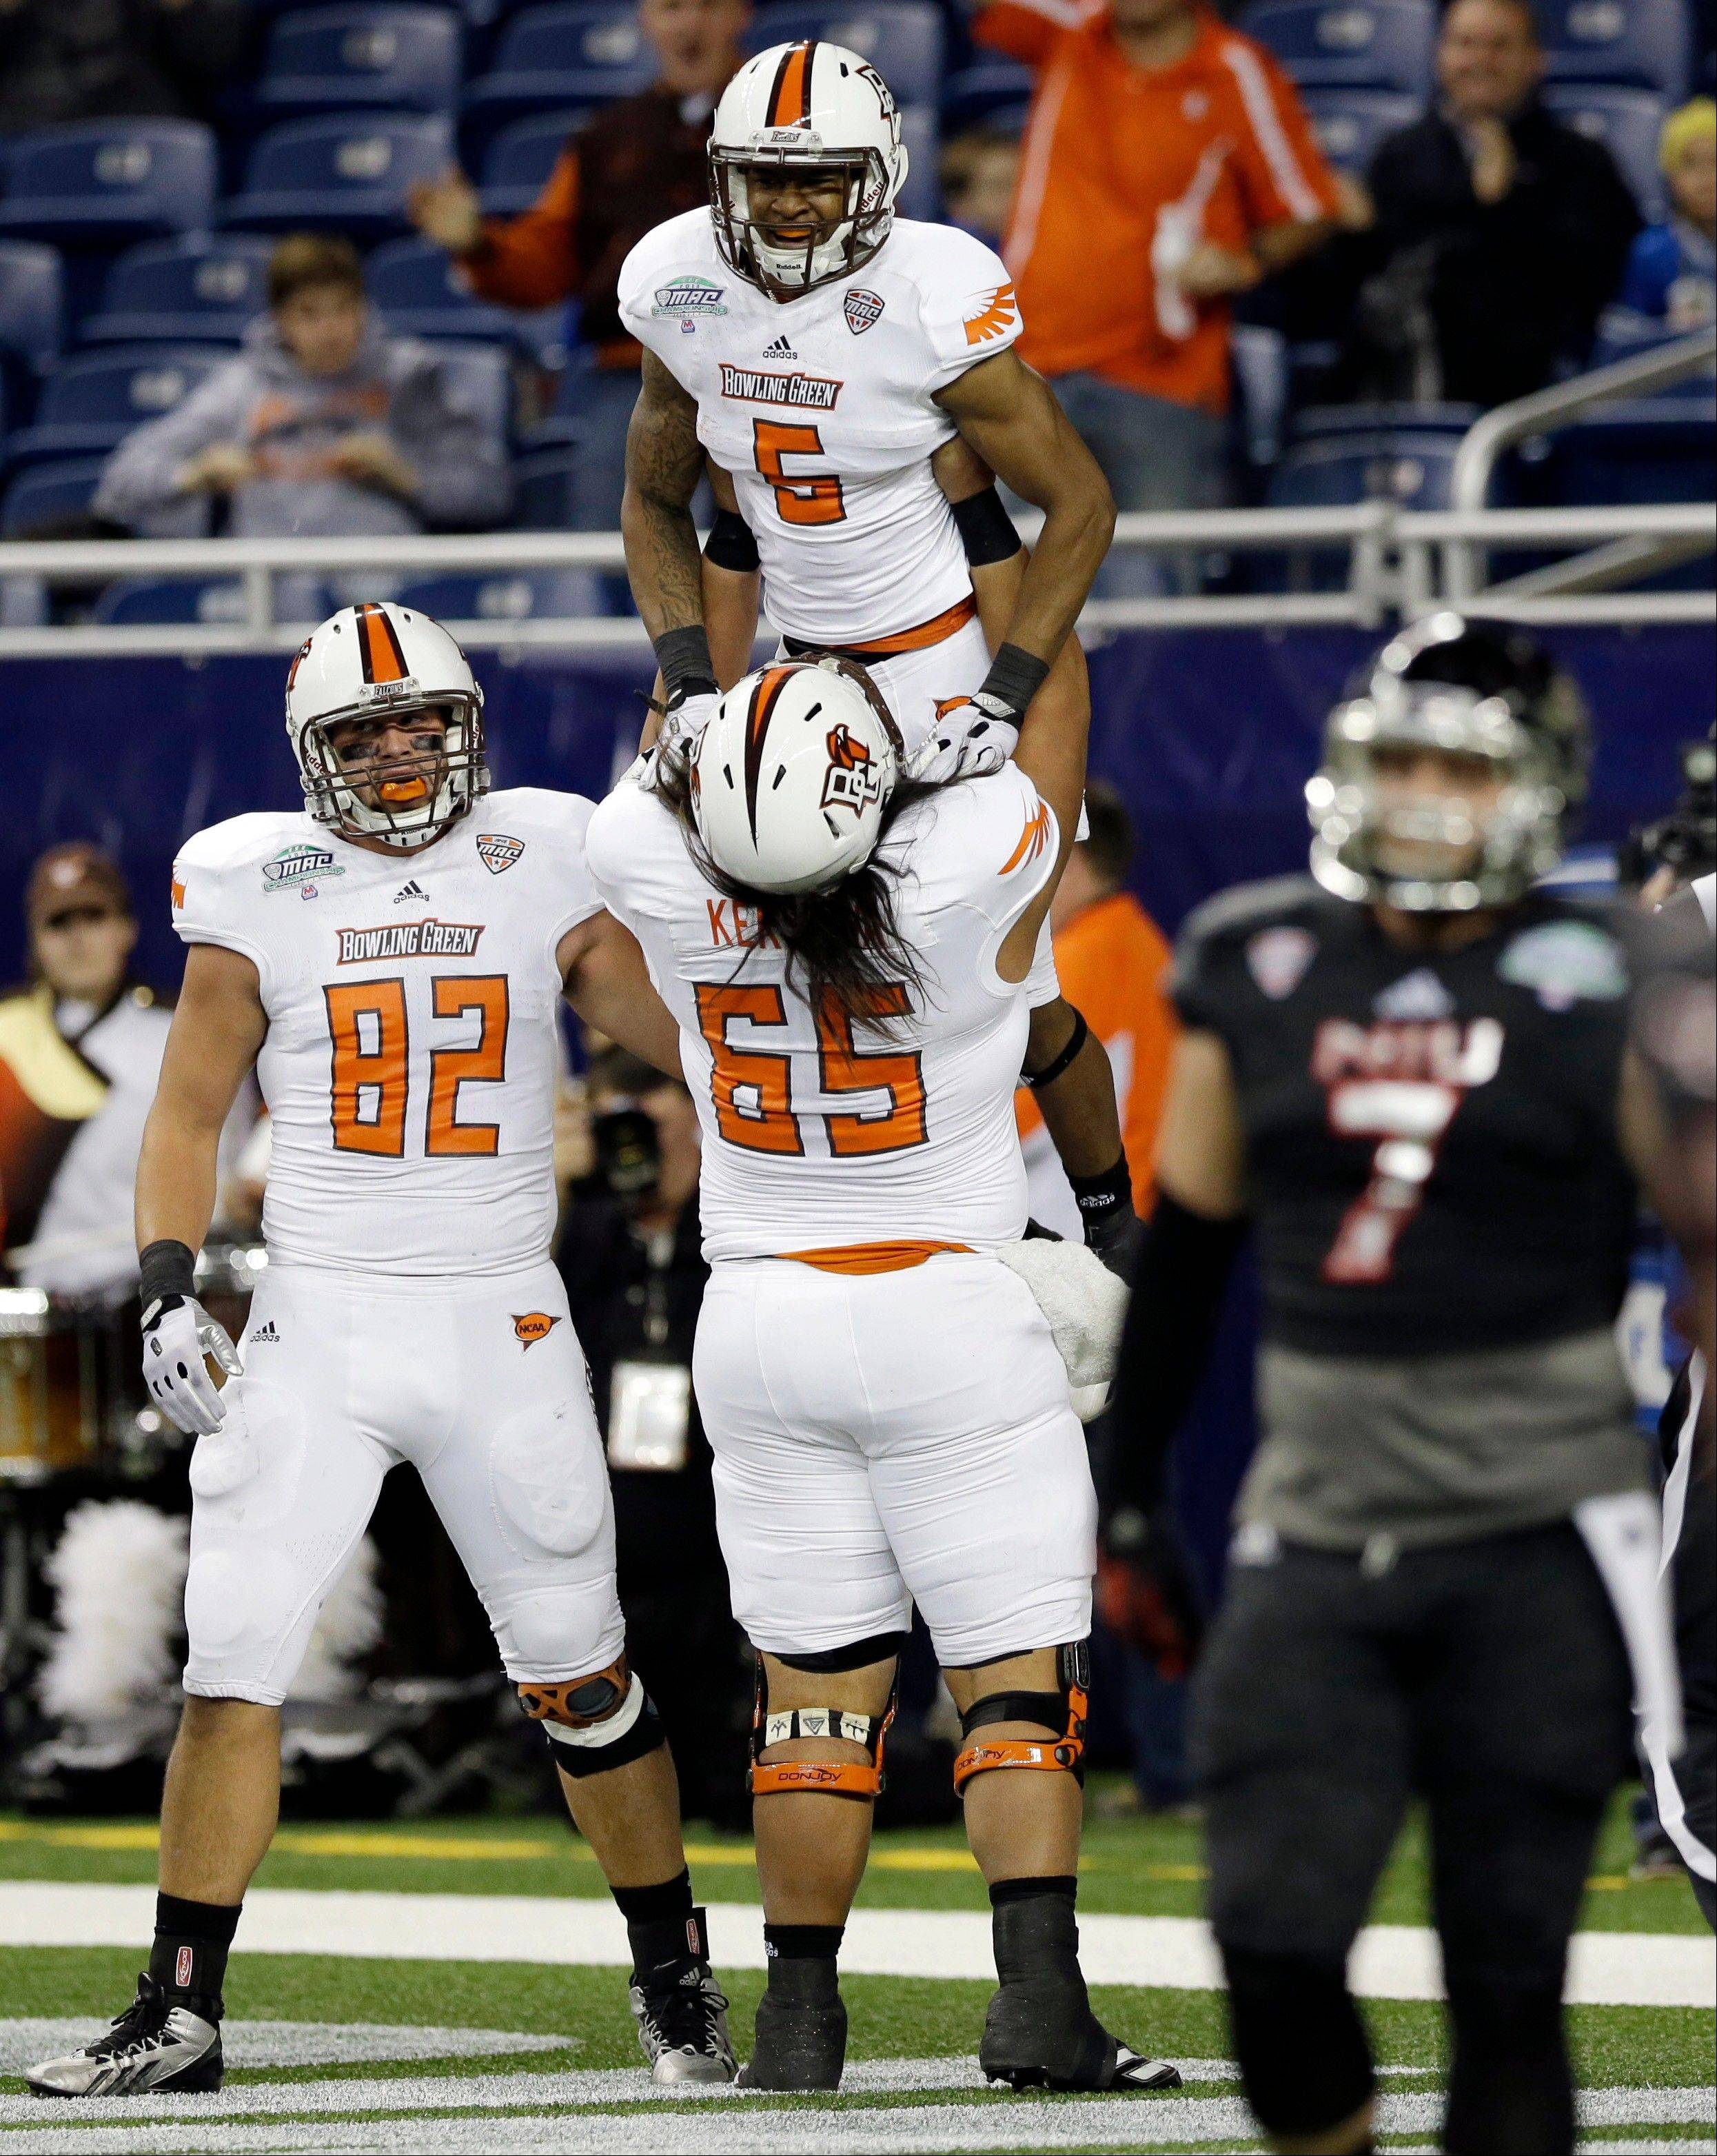 Bowling Green offensive lineman David Kekuewa lifts wide receiver Ronnie Moore after Moore scored during the first half Friday against NIU.